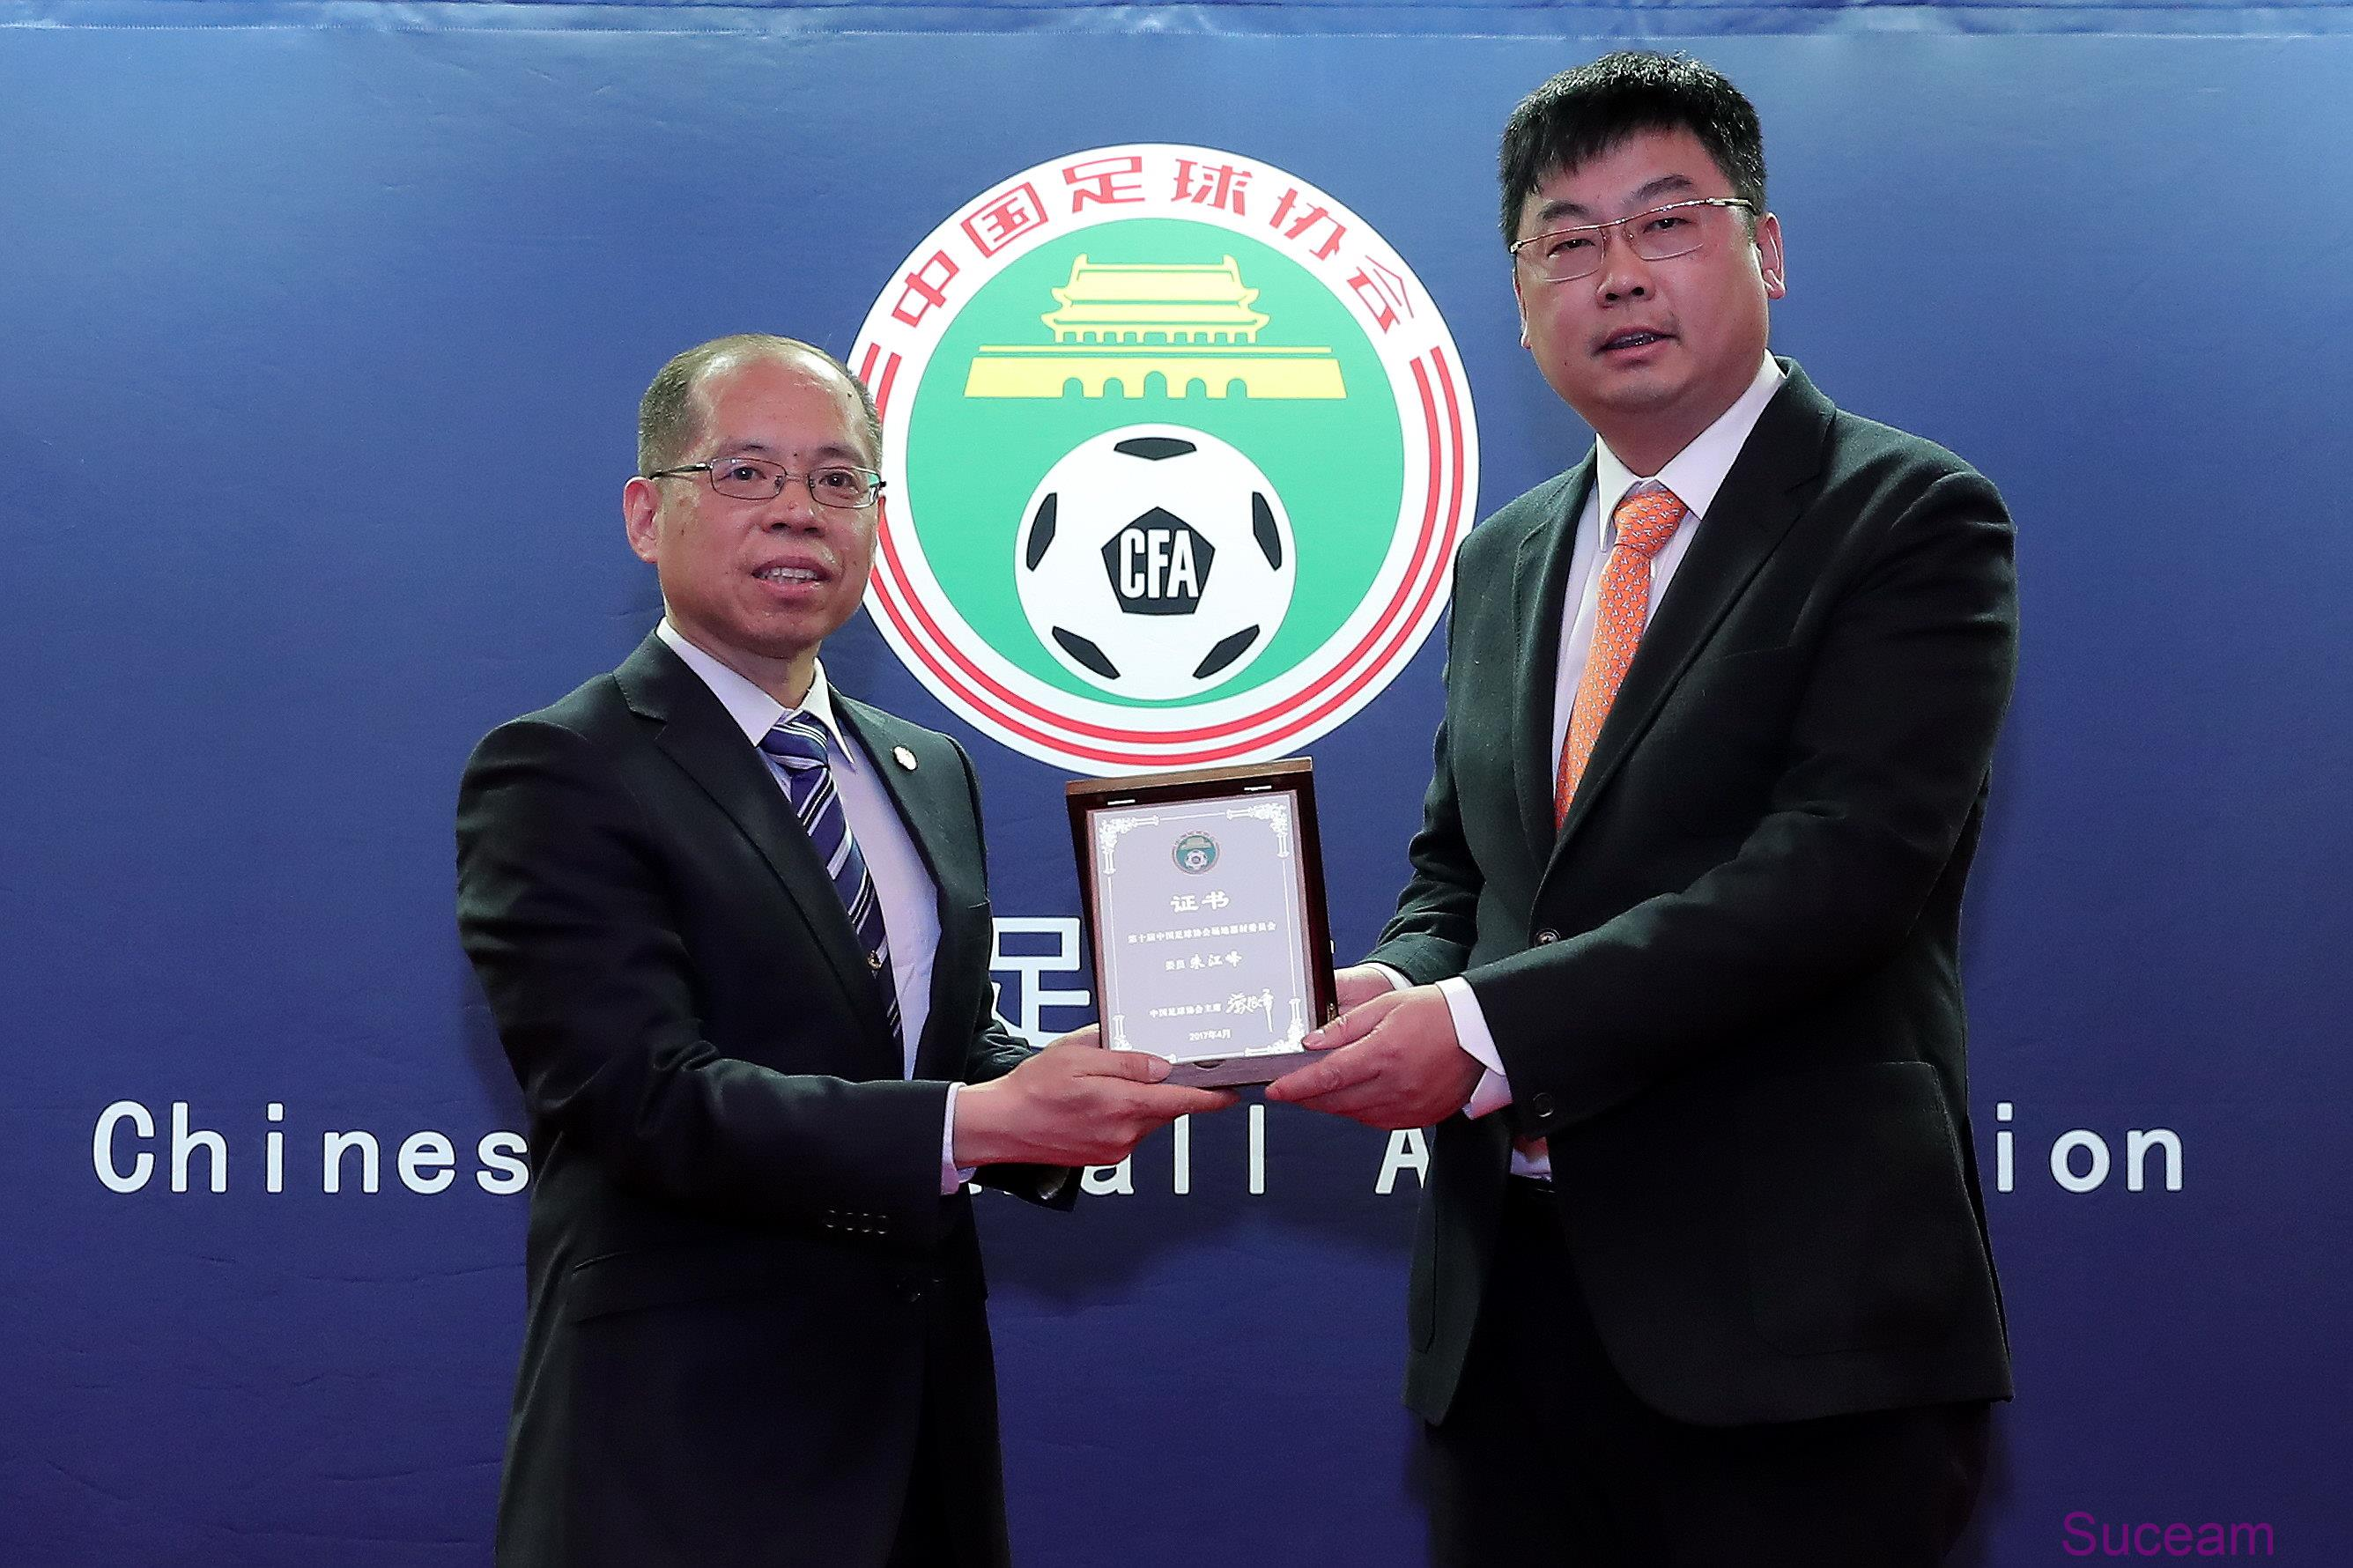 【Headline】Jason Zhu the Chairman of AVG  has been appointed special committee member of the Chinese Football Association, AVG become the member unit of the China Football Association venue committee